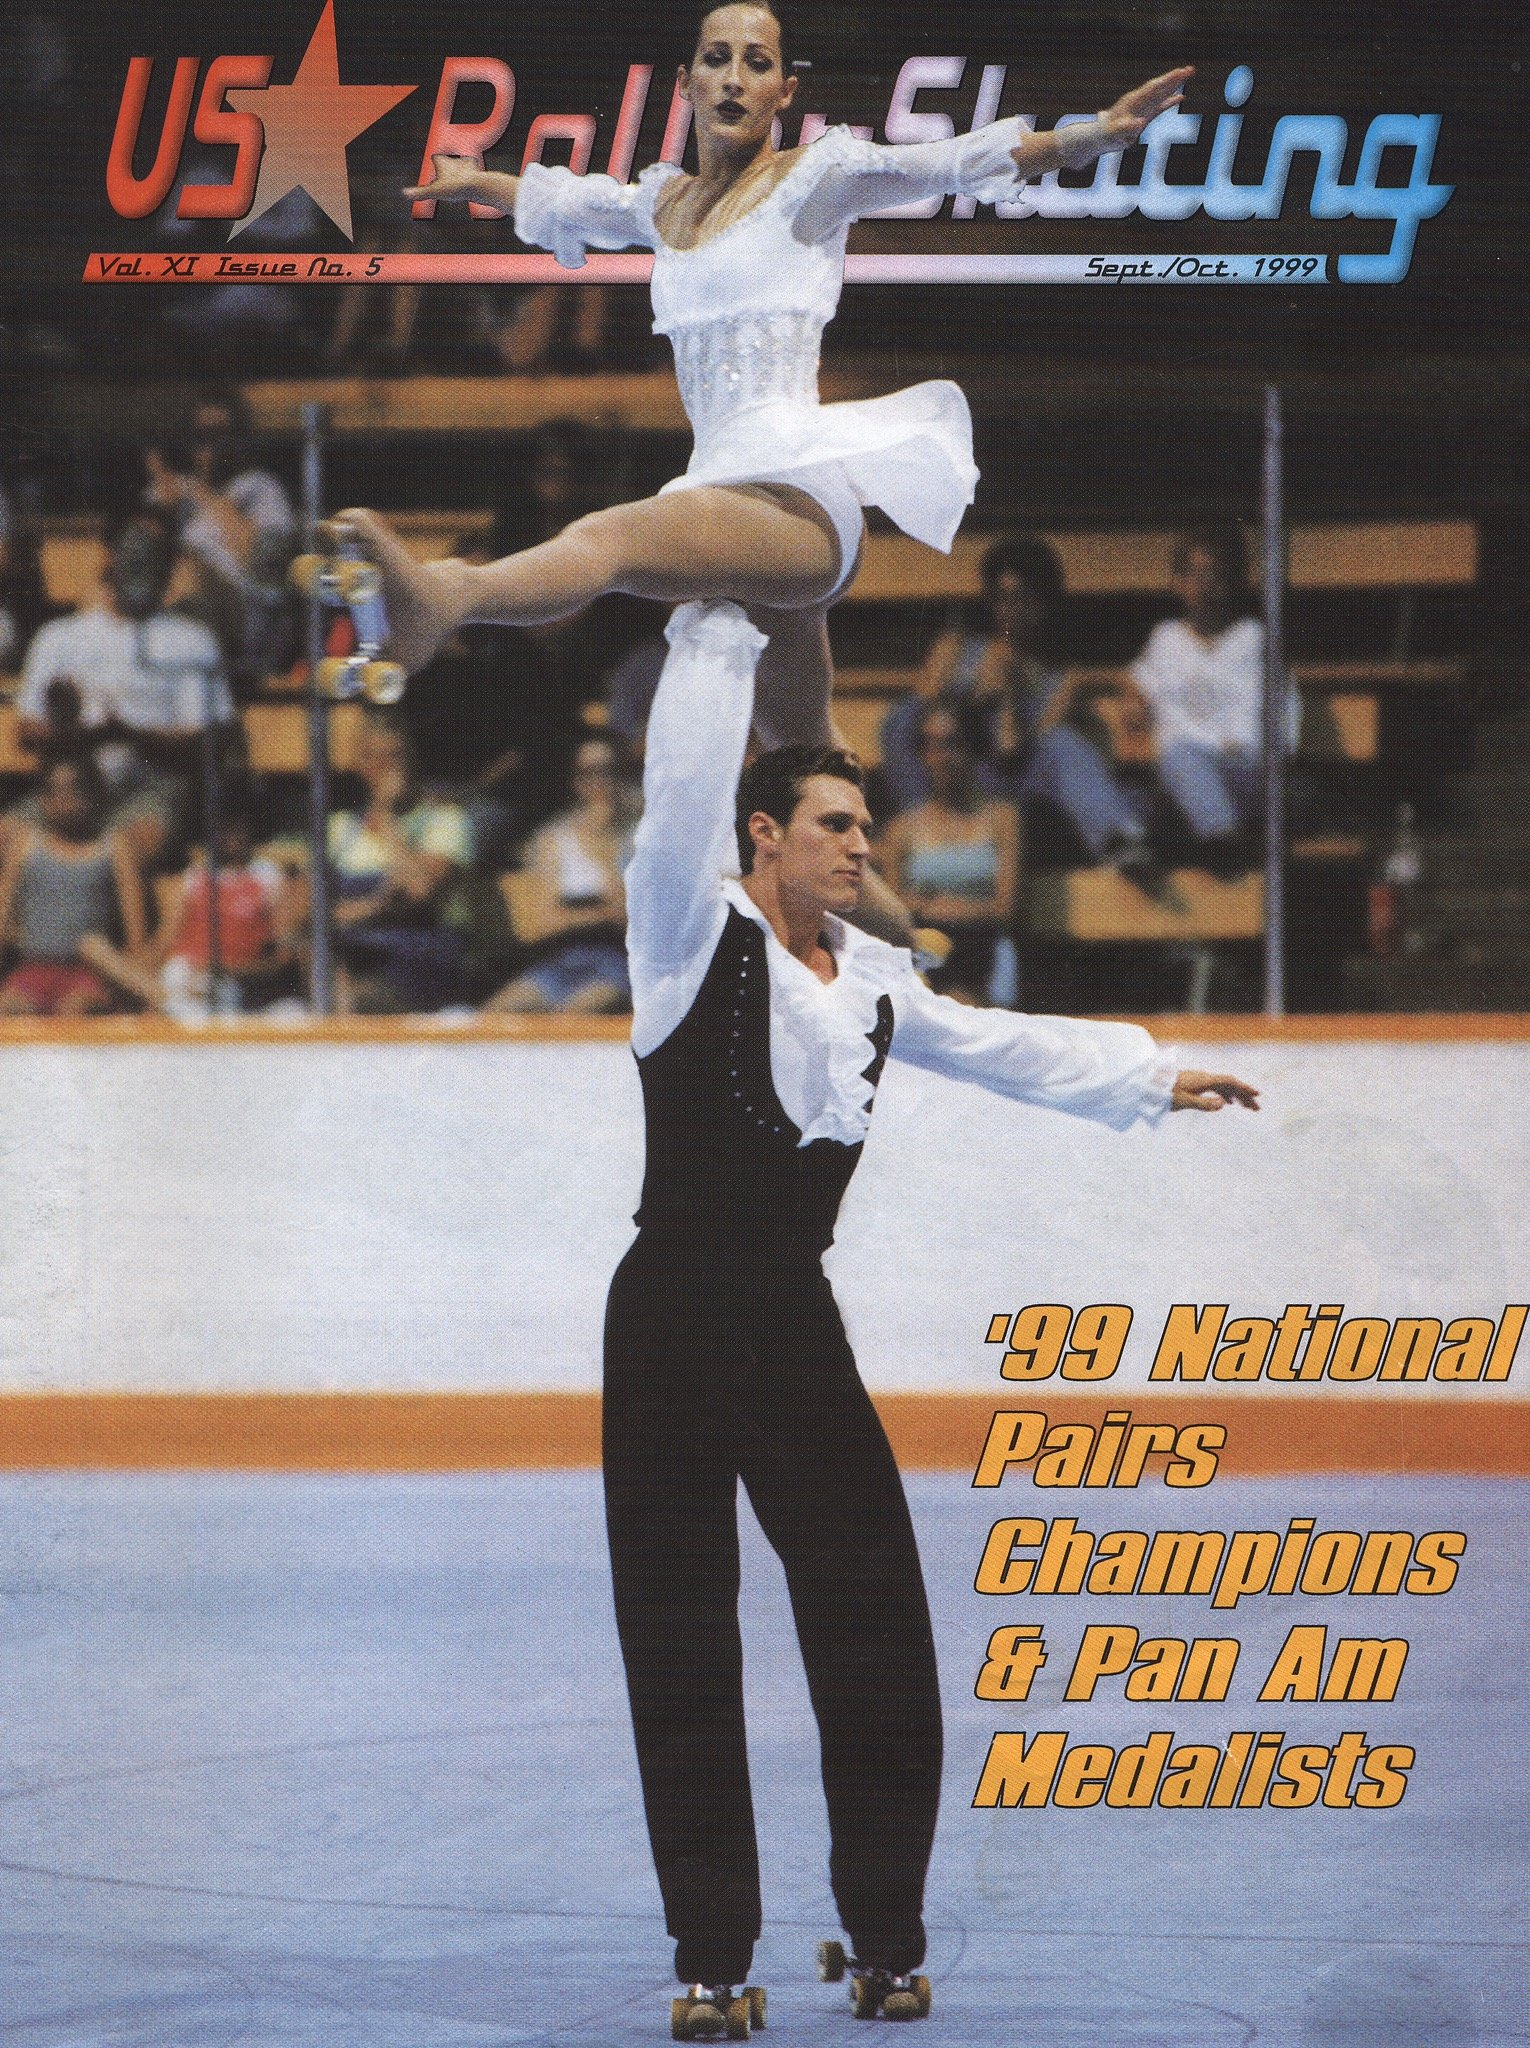 April featured on the cover of US Roller Skating's September/October 1999 Issue